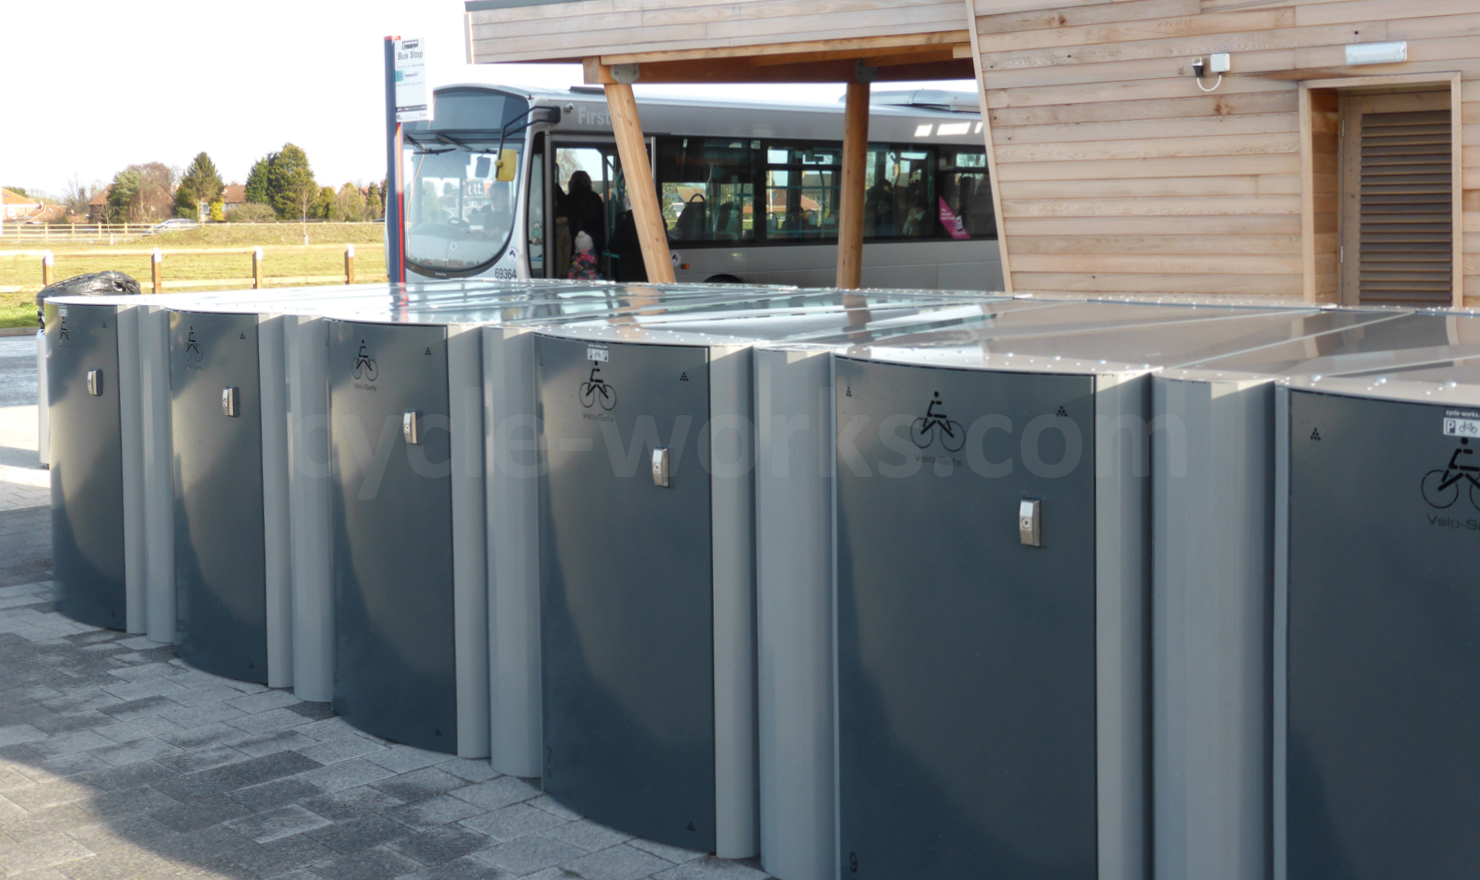 York Askham Bar Park and Ride Bicycle Lockers